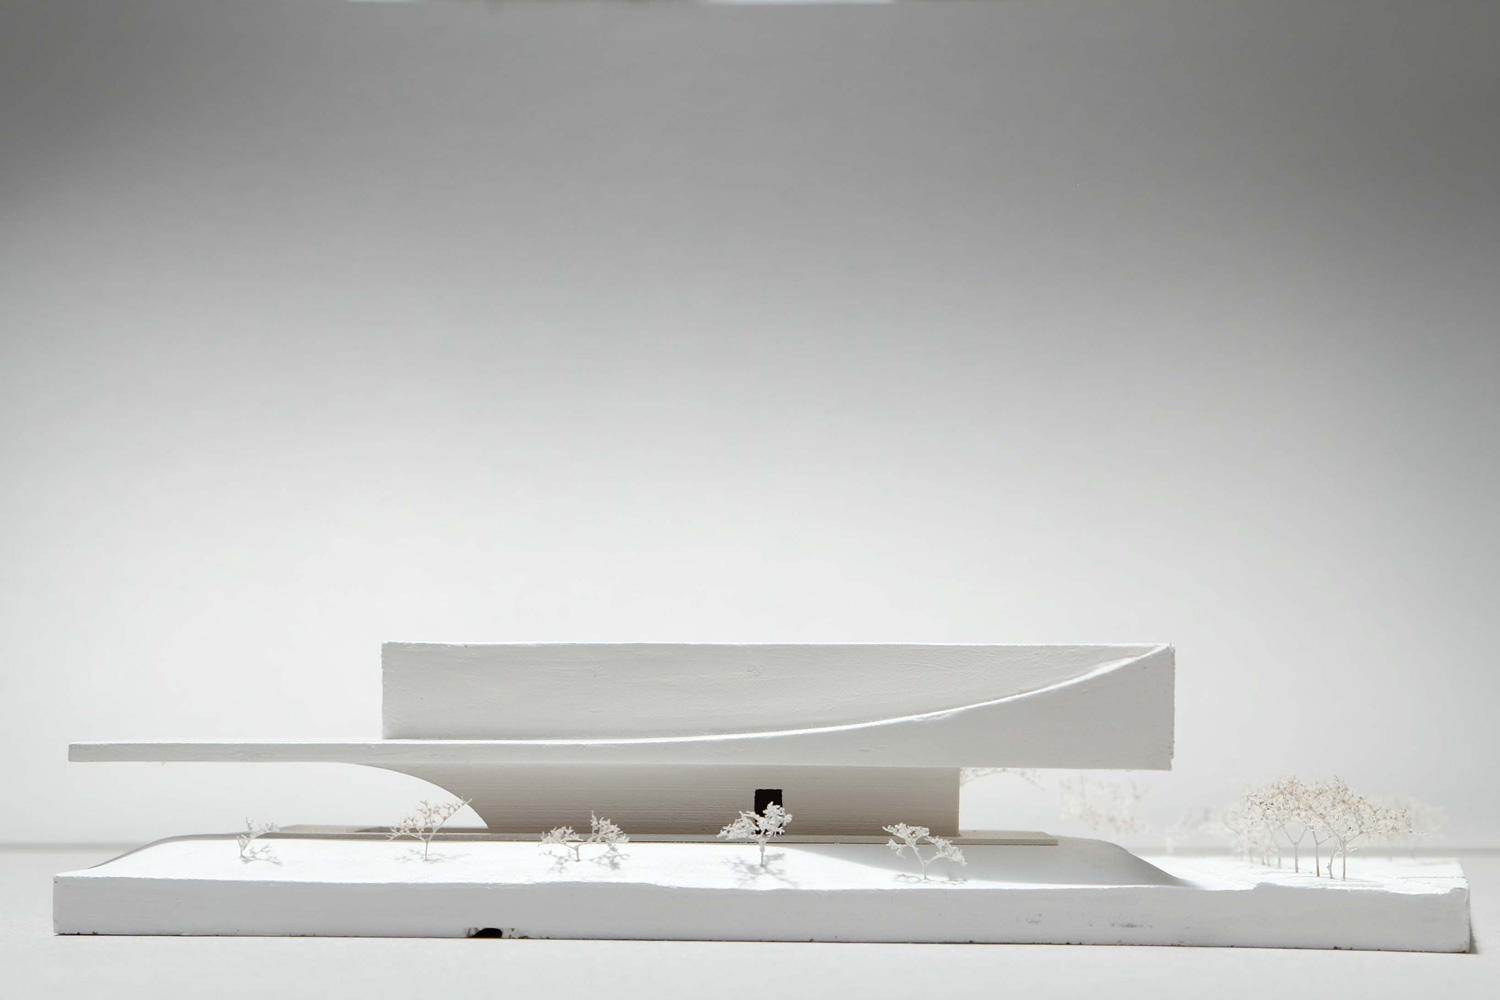 Andrew Burns Berlin competition model by Make Models | Yellowtrace